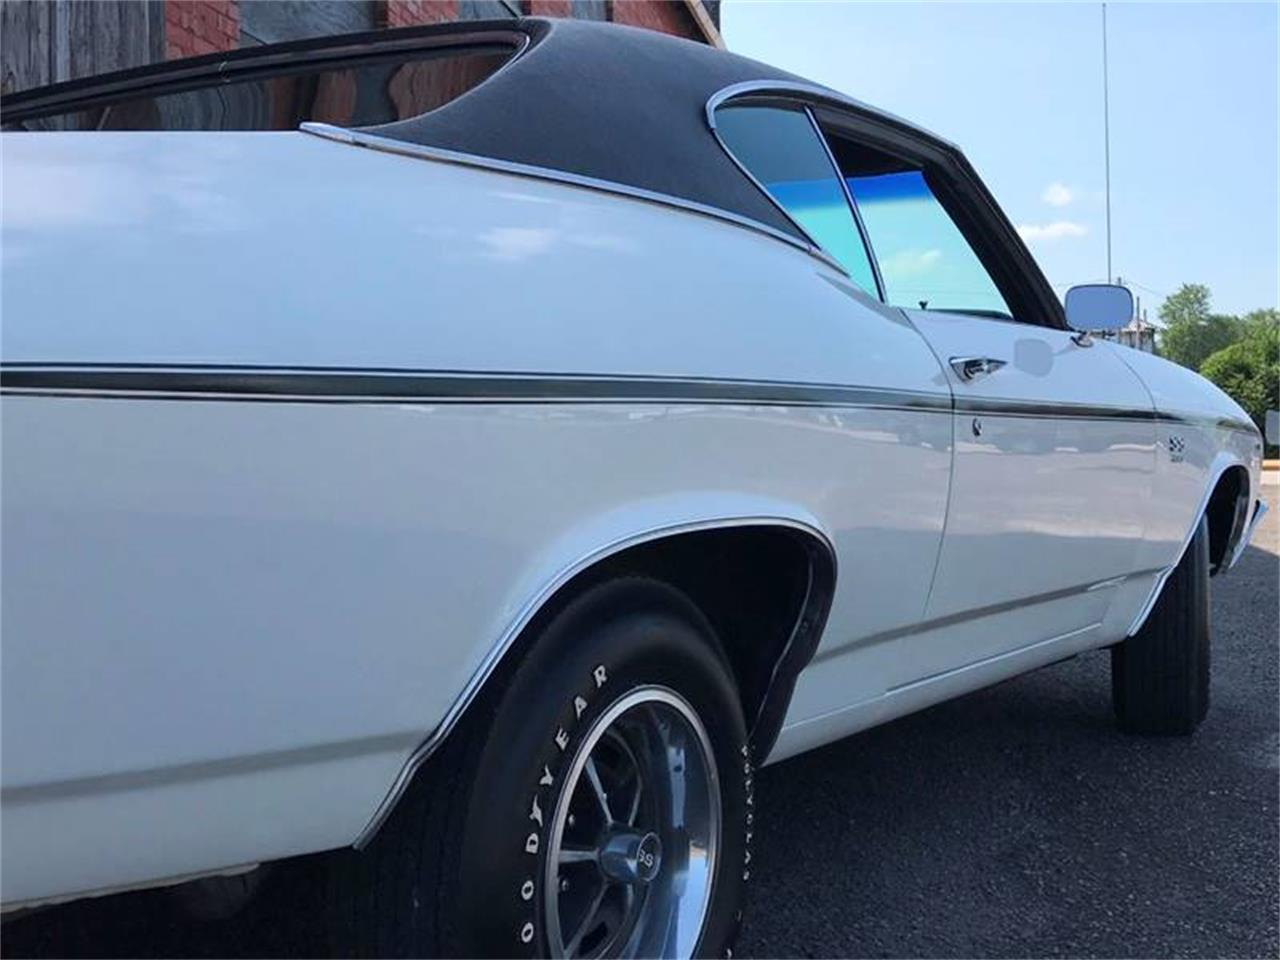 1969 Chevrolet Chevelle for sale in Orville, OH – photo 34